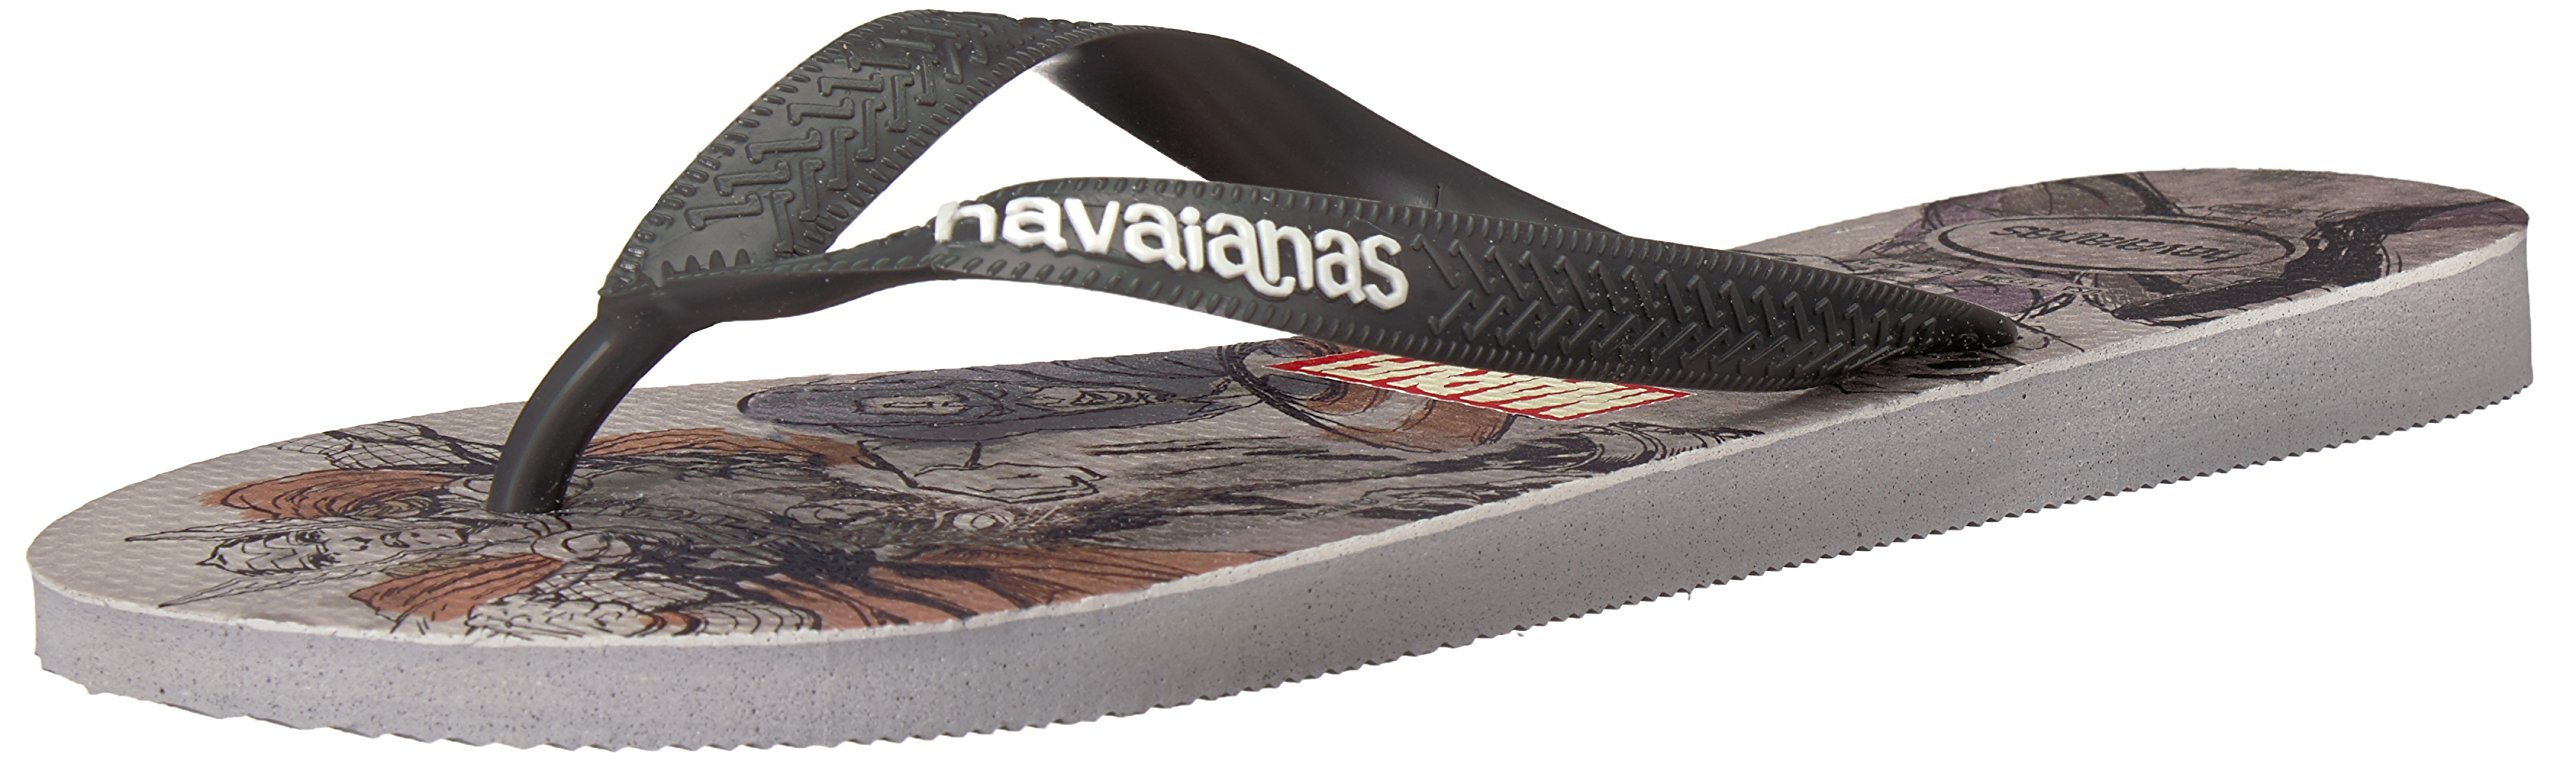 5dbb19268 Get Quotations · Havaianas Men s Top Marvel Avengers Sandal Ice Grey